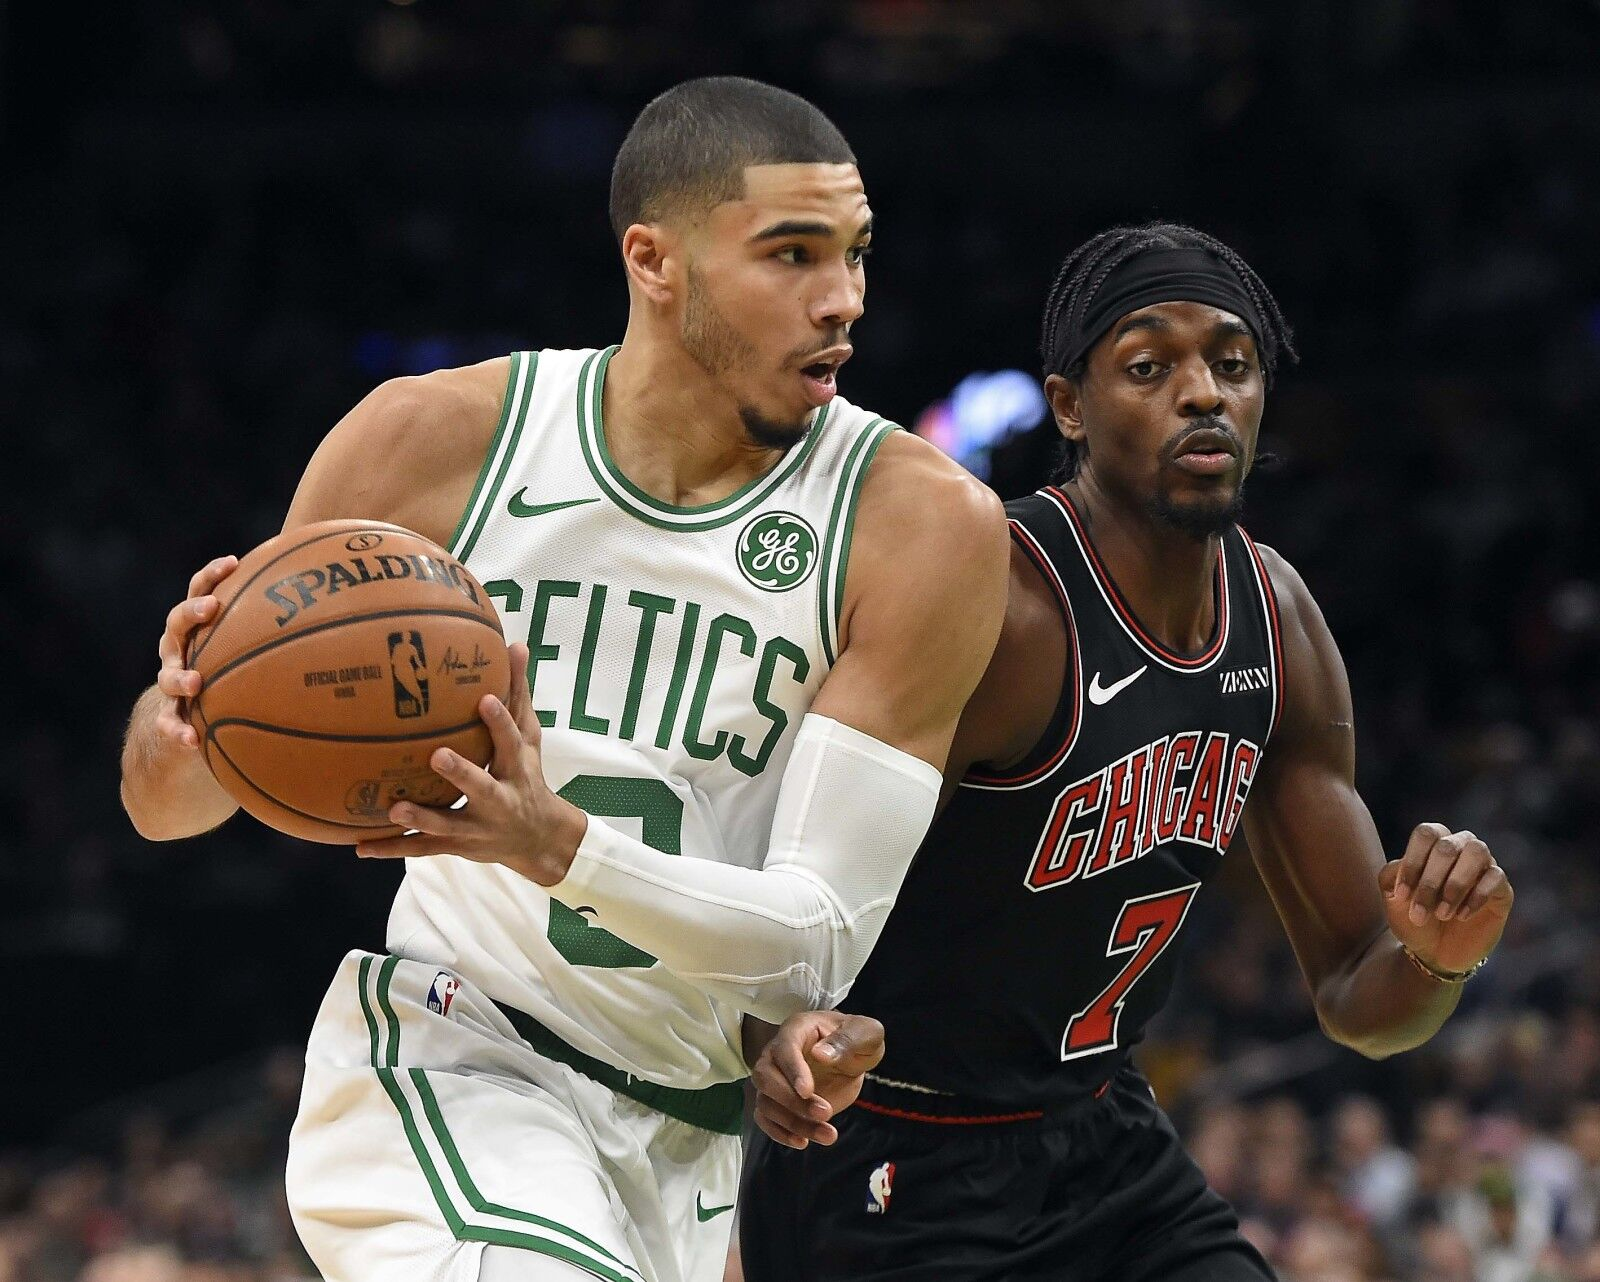 b676d7a67d94 What to watch for when the Boston Celtics visit the Chicago Bulls